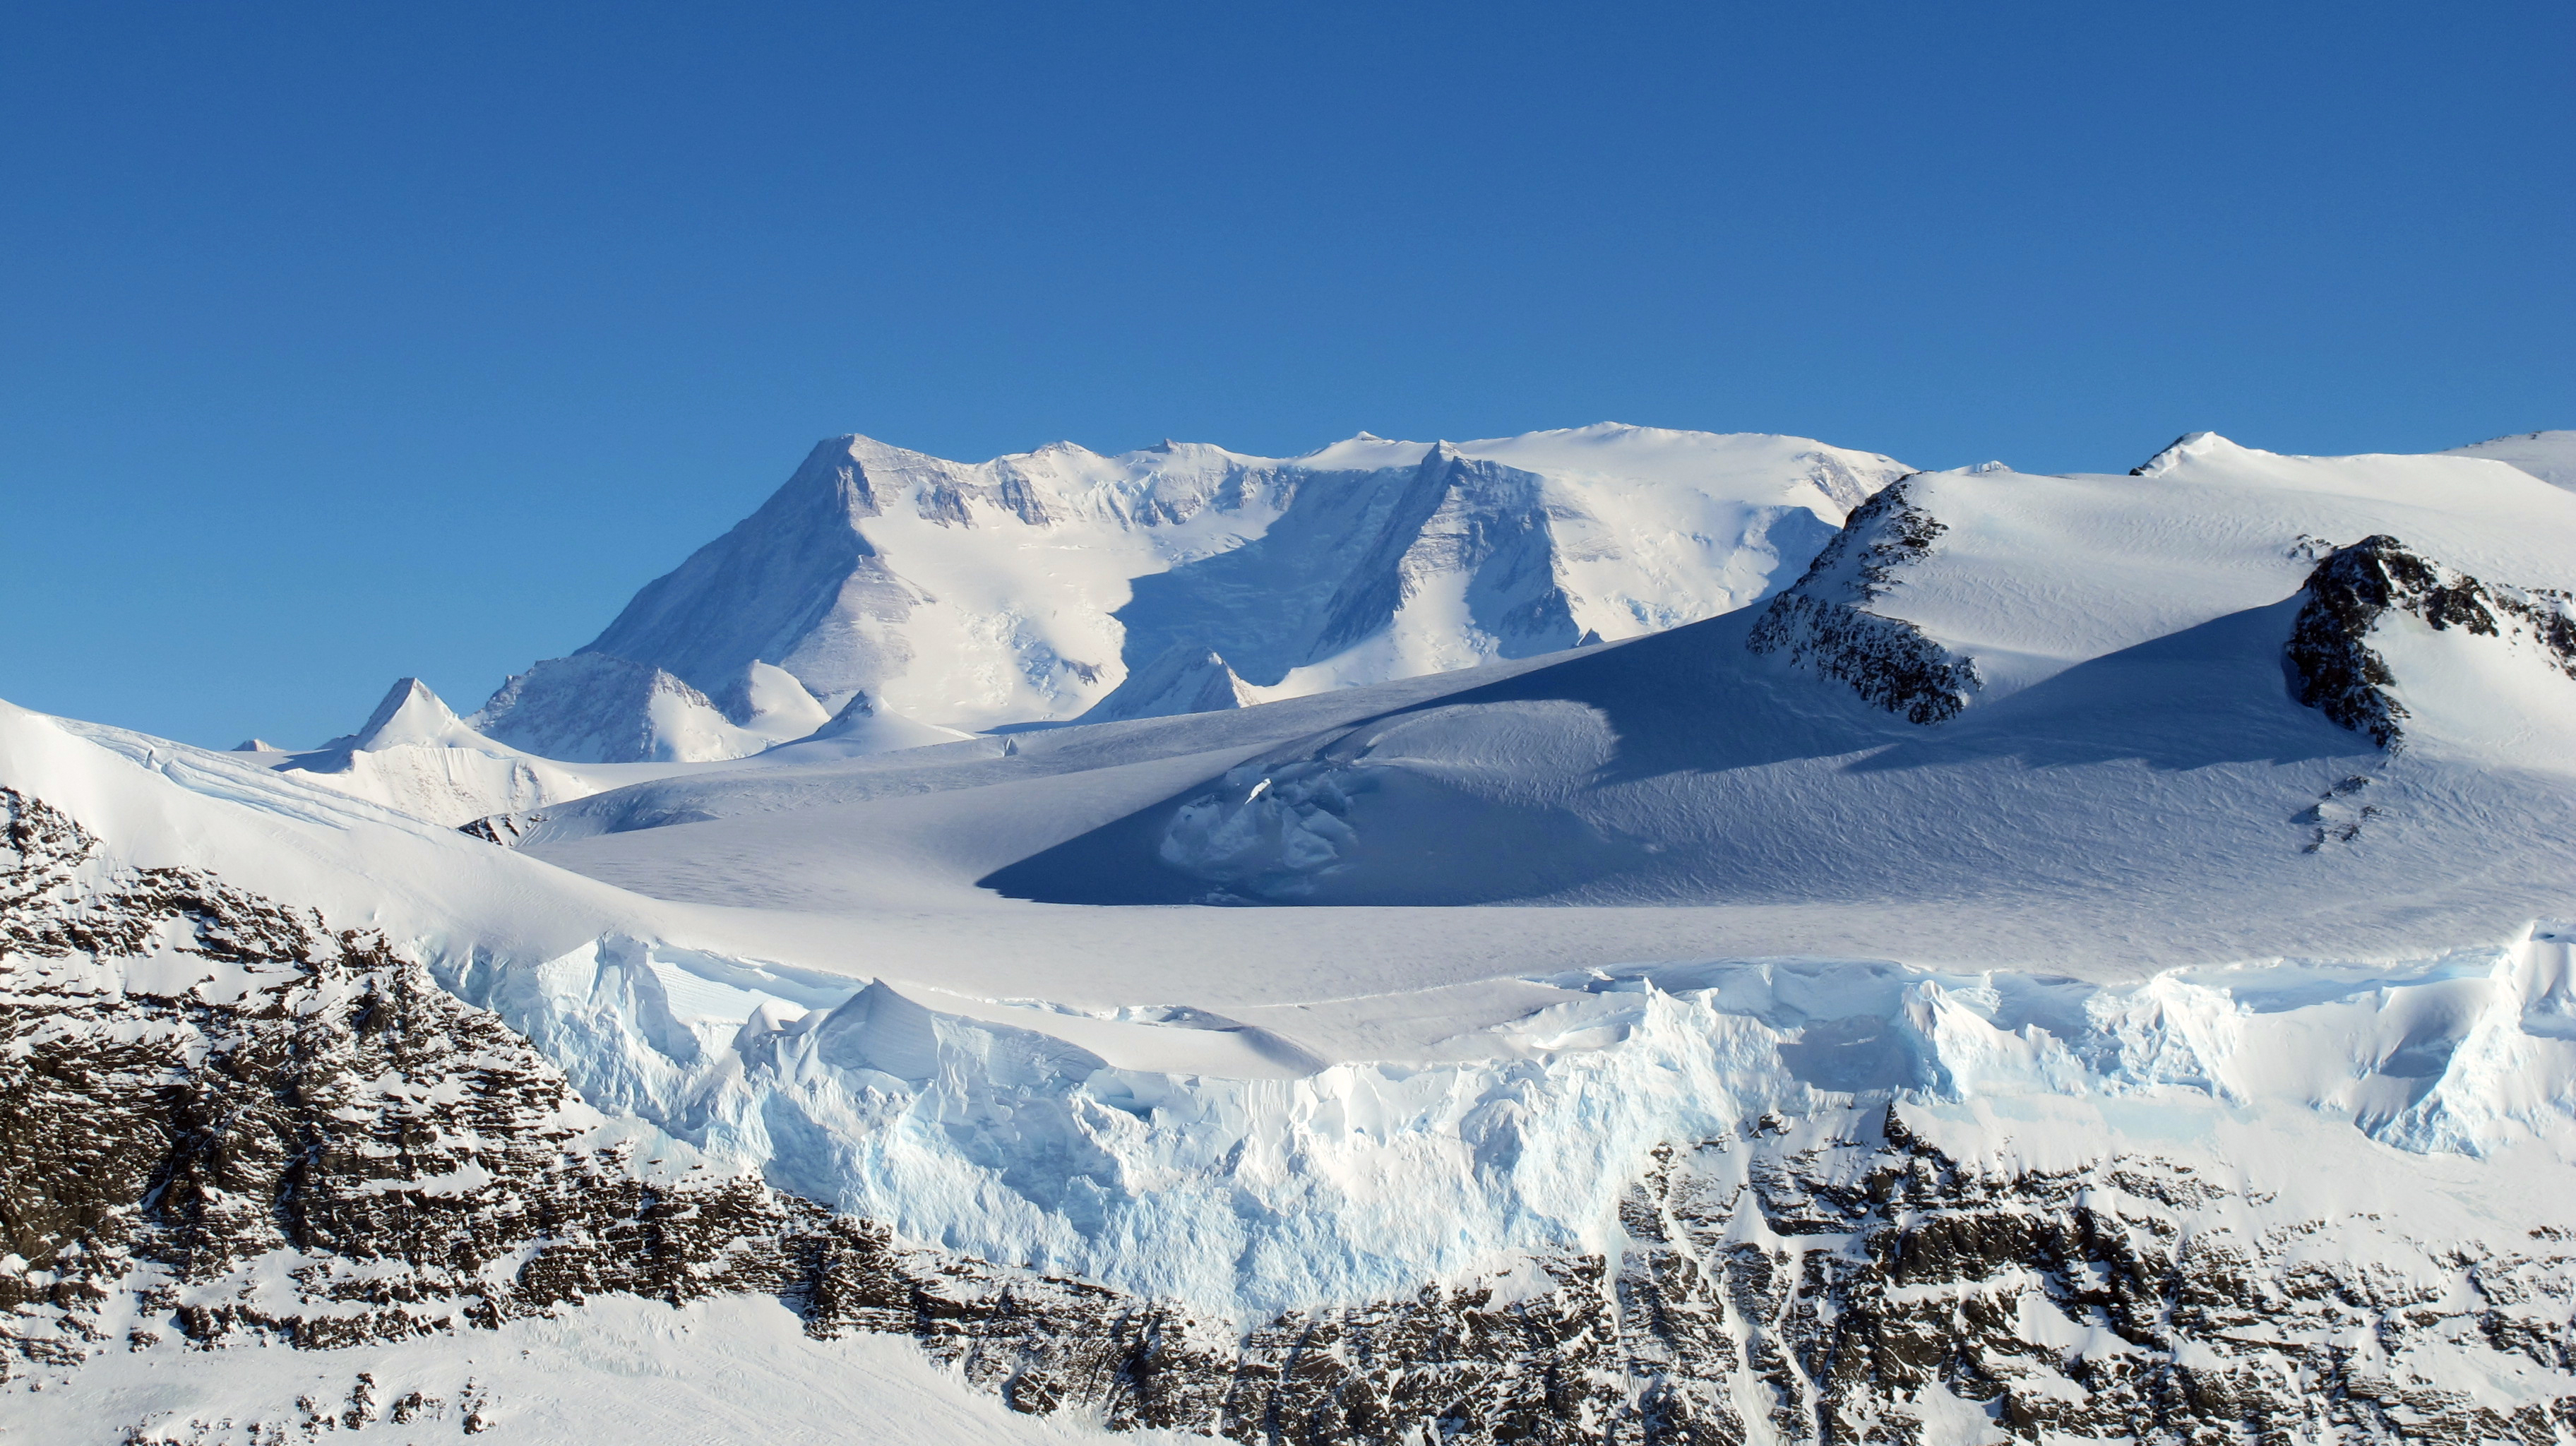 Ellsworth mountains, Antarctica.